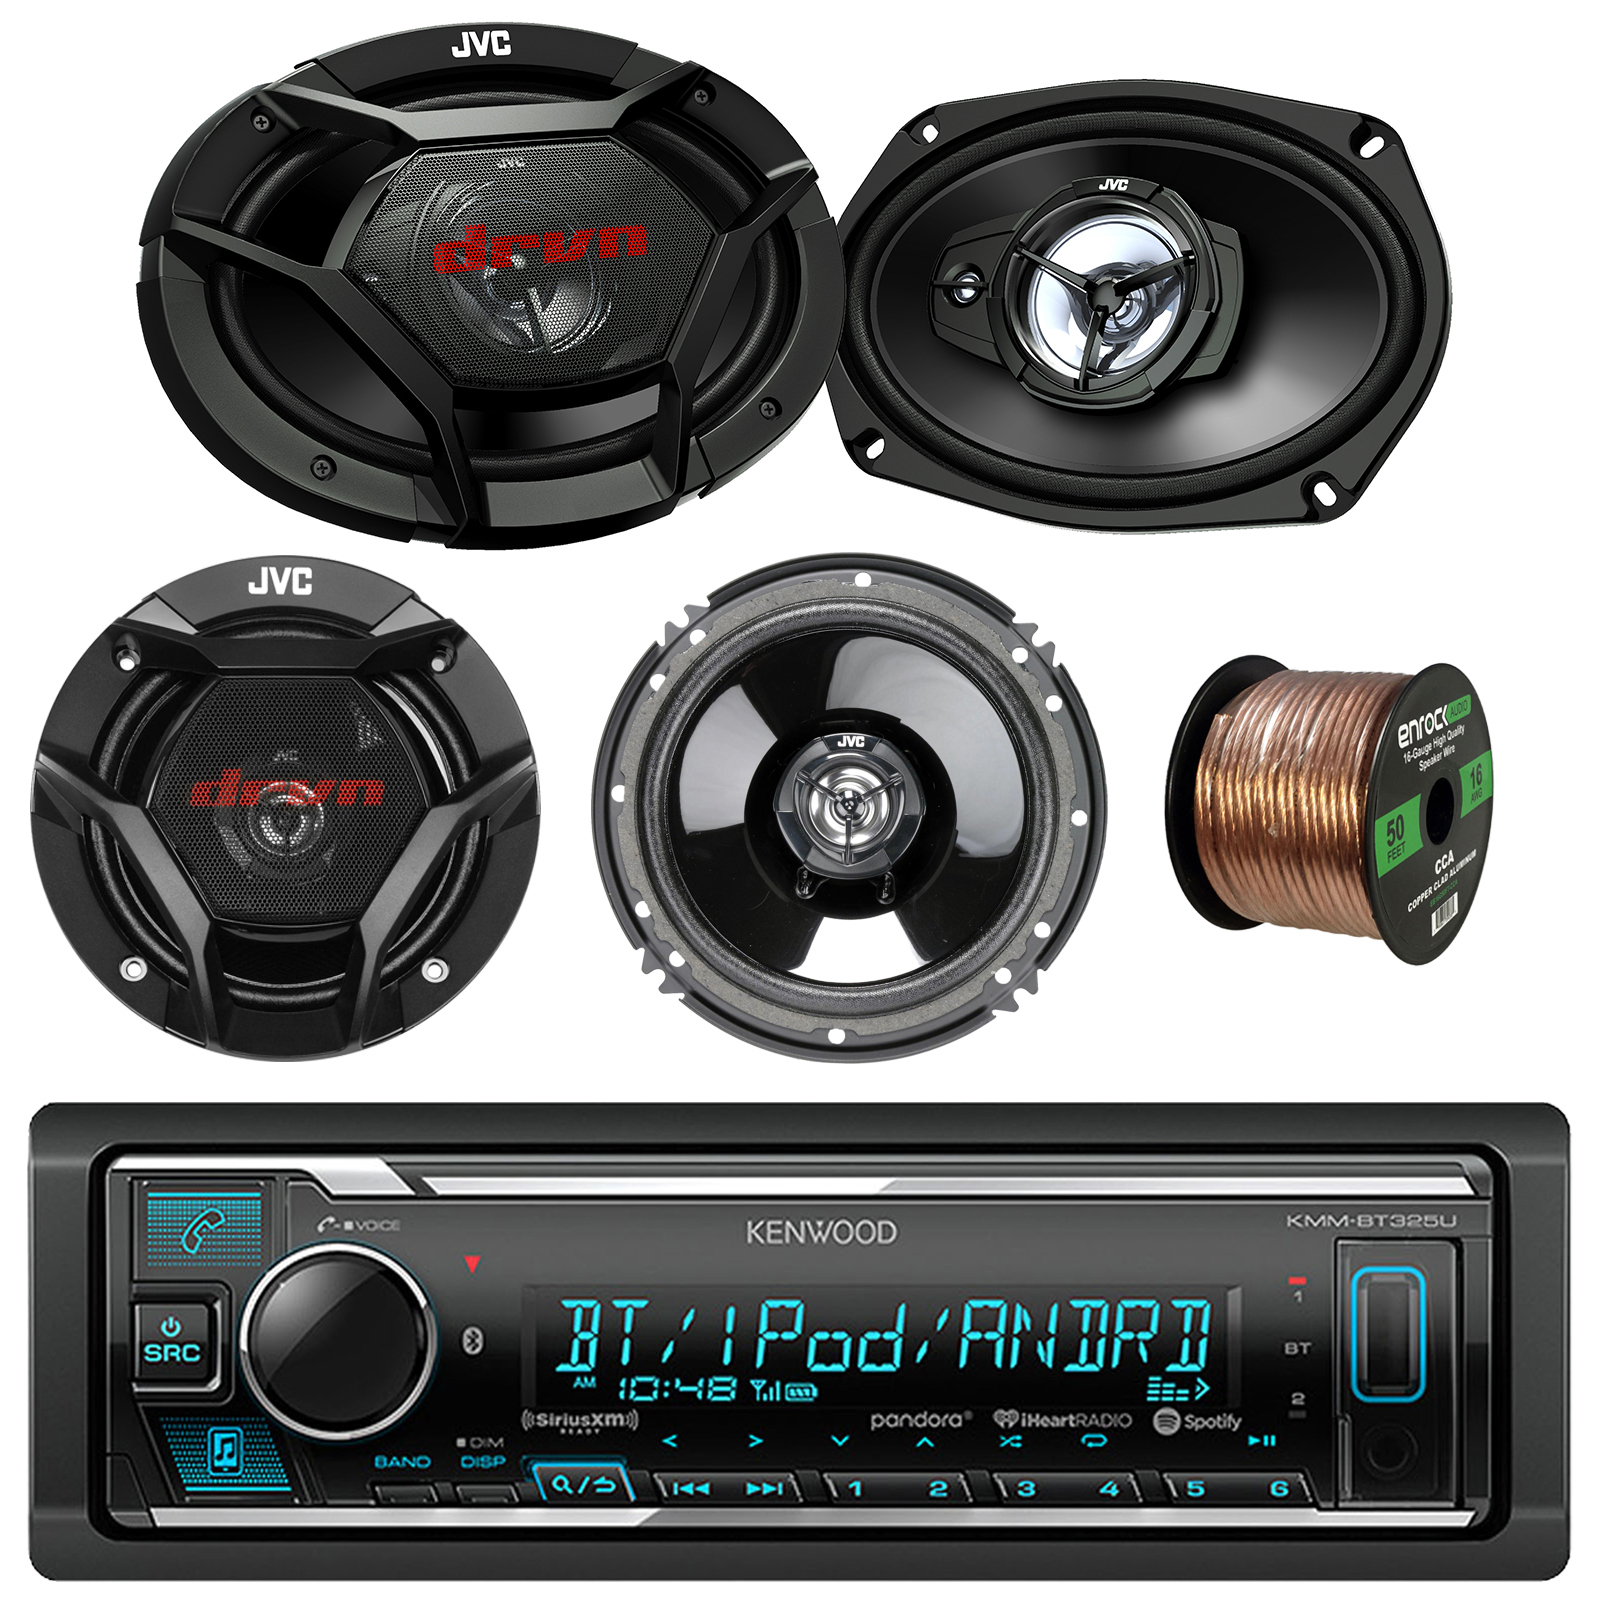 "Kenwood KMMBT325U Car Stereo Bluetooth Digital Receiver Bundle Combo With 2x JVC CS-DR6930 6x9"" 3-Way Vehicle Coaxial Speakers + 2x CS-DR620 6.5"" 2-Way Audio Speakers + Enrock 50Ft 16g Speaker Wire"